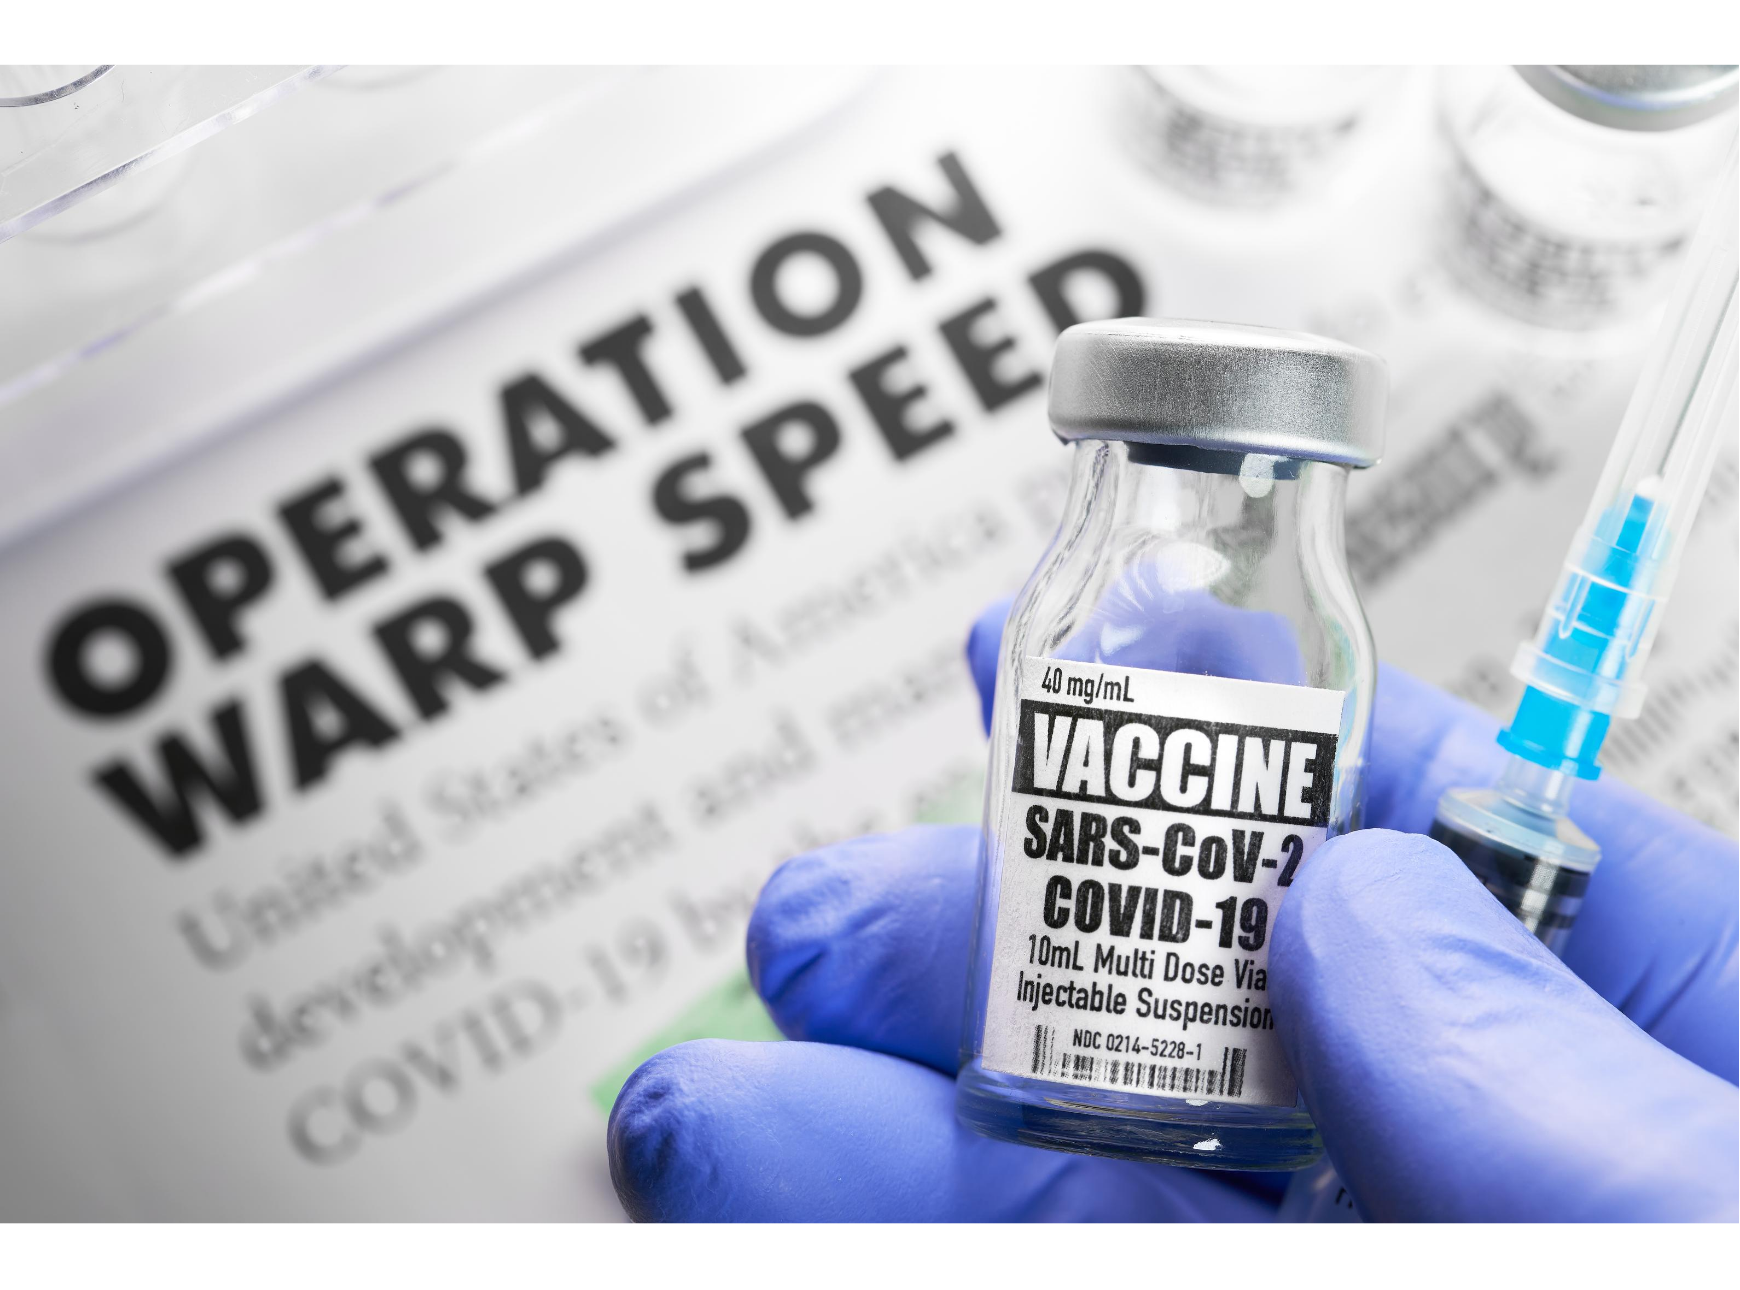 Operation Warp Speed On Track for COVID-19 Vaccine Distribution by January  2021, Officials Say